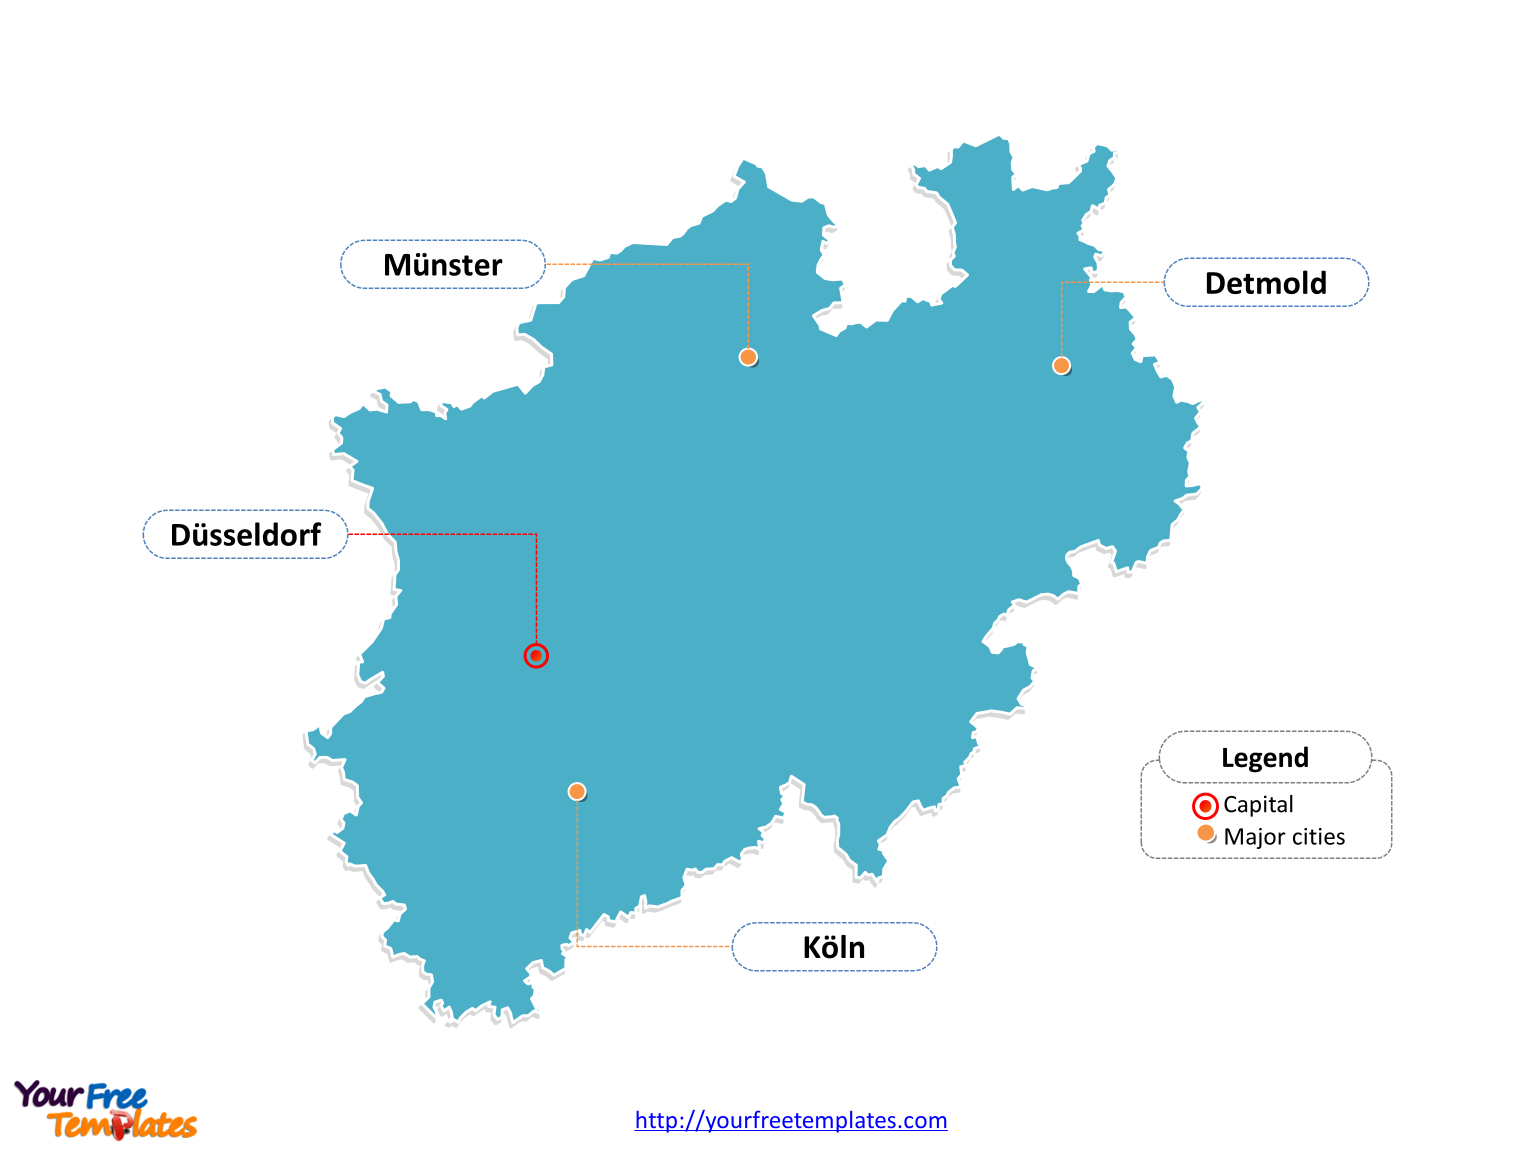 North Rhine-Westphalia map PowerPoint templates labeled with cities